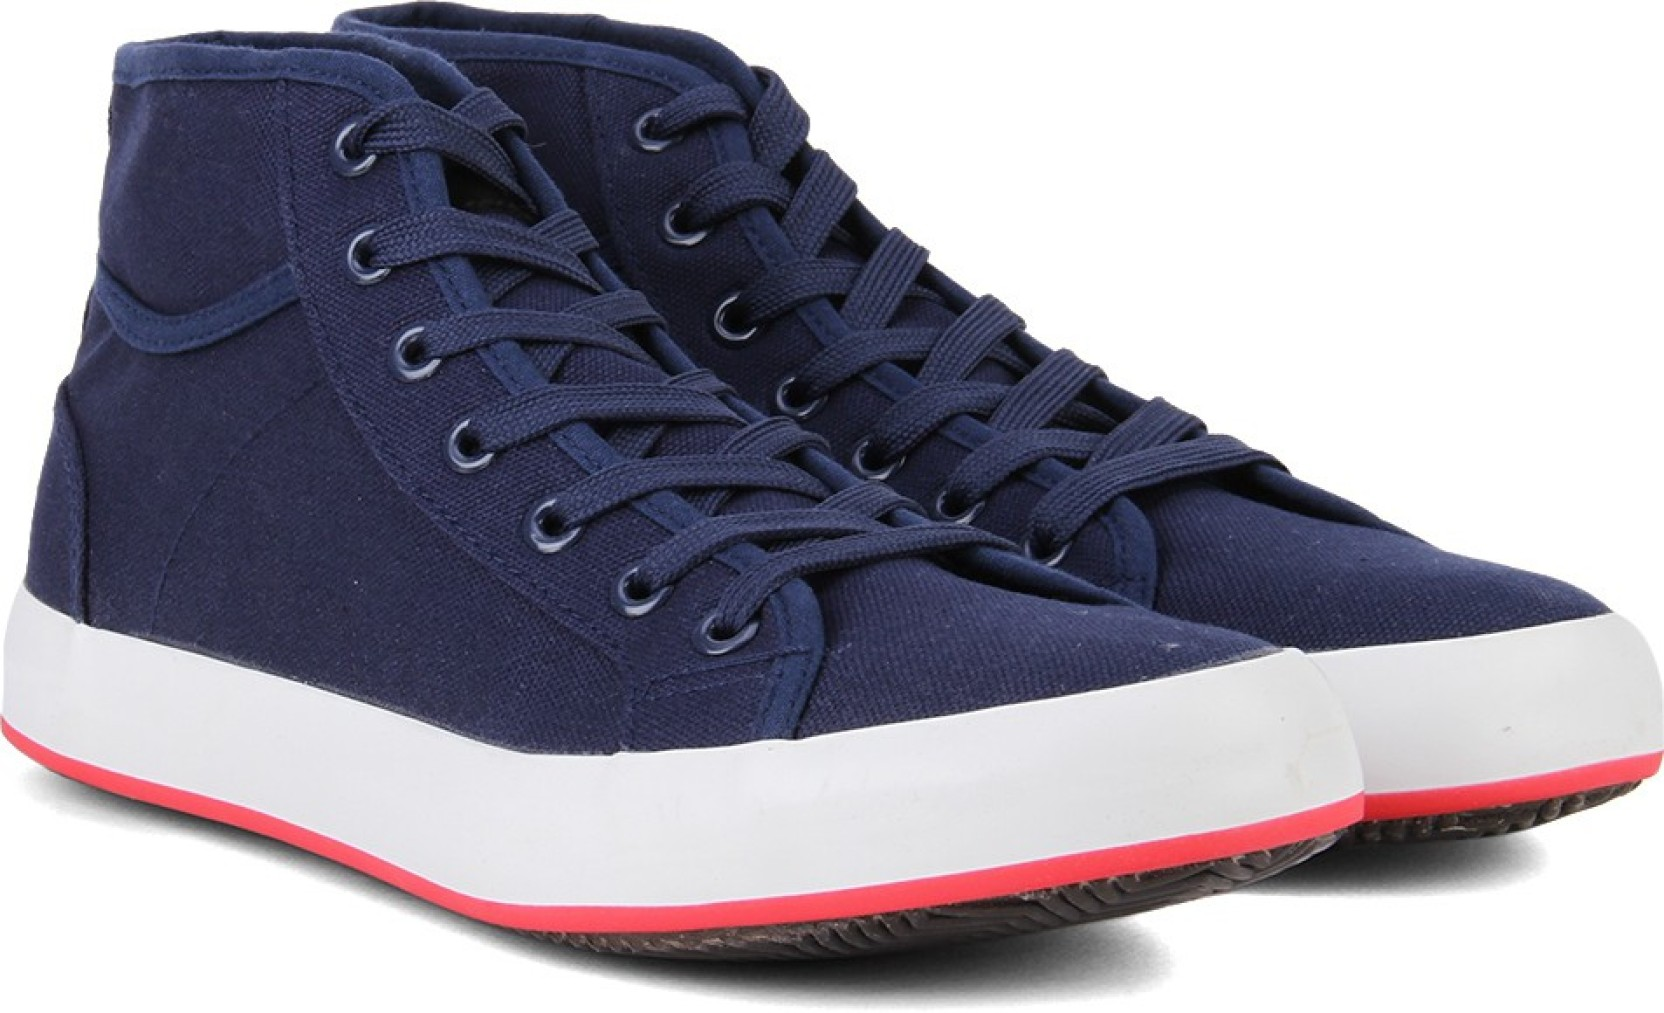 Peter England Shoes Price